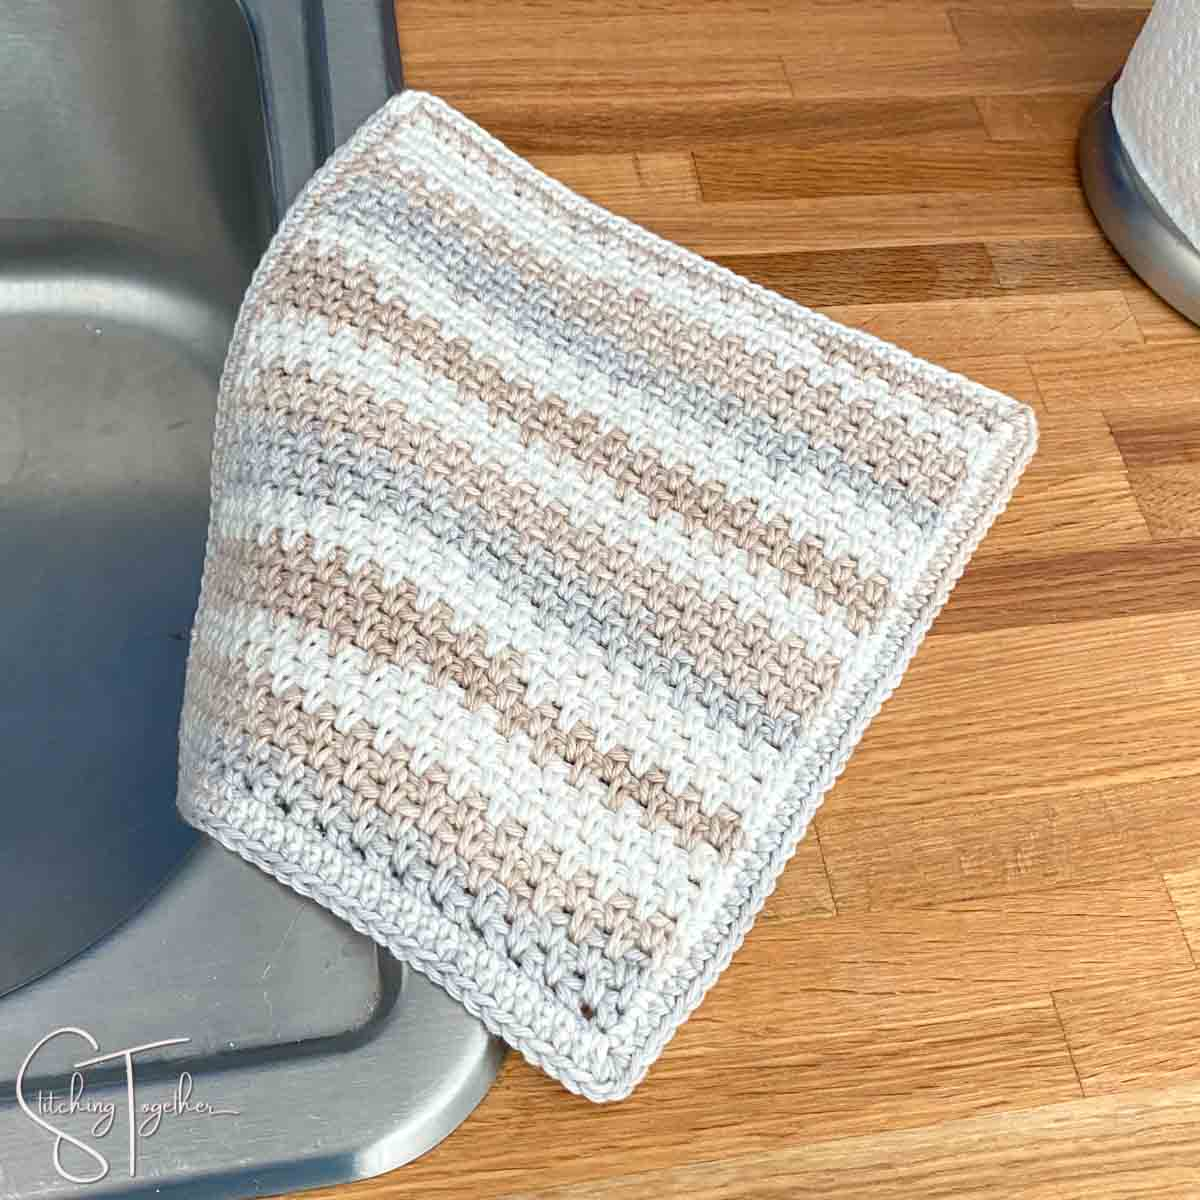 striped crochet moss stitch dishcloth on the side of a sink